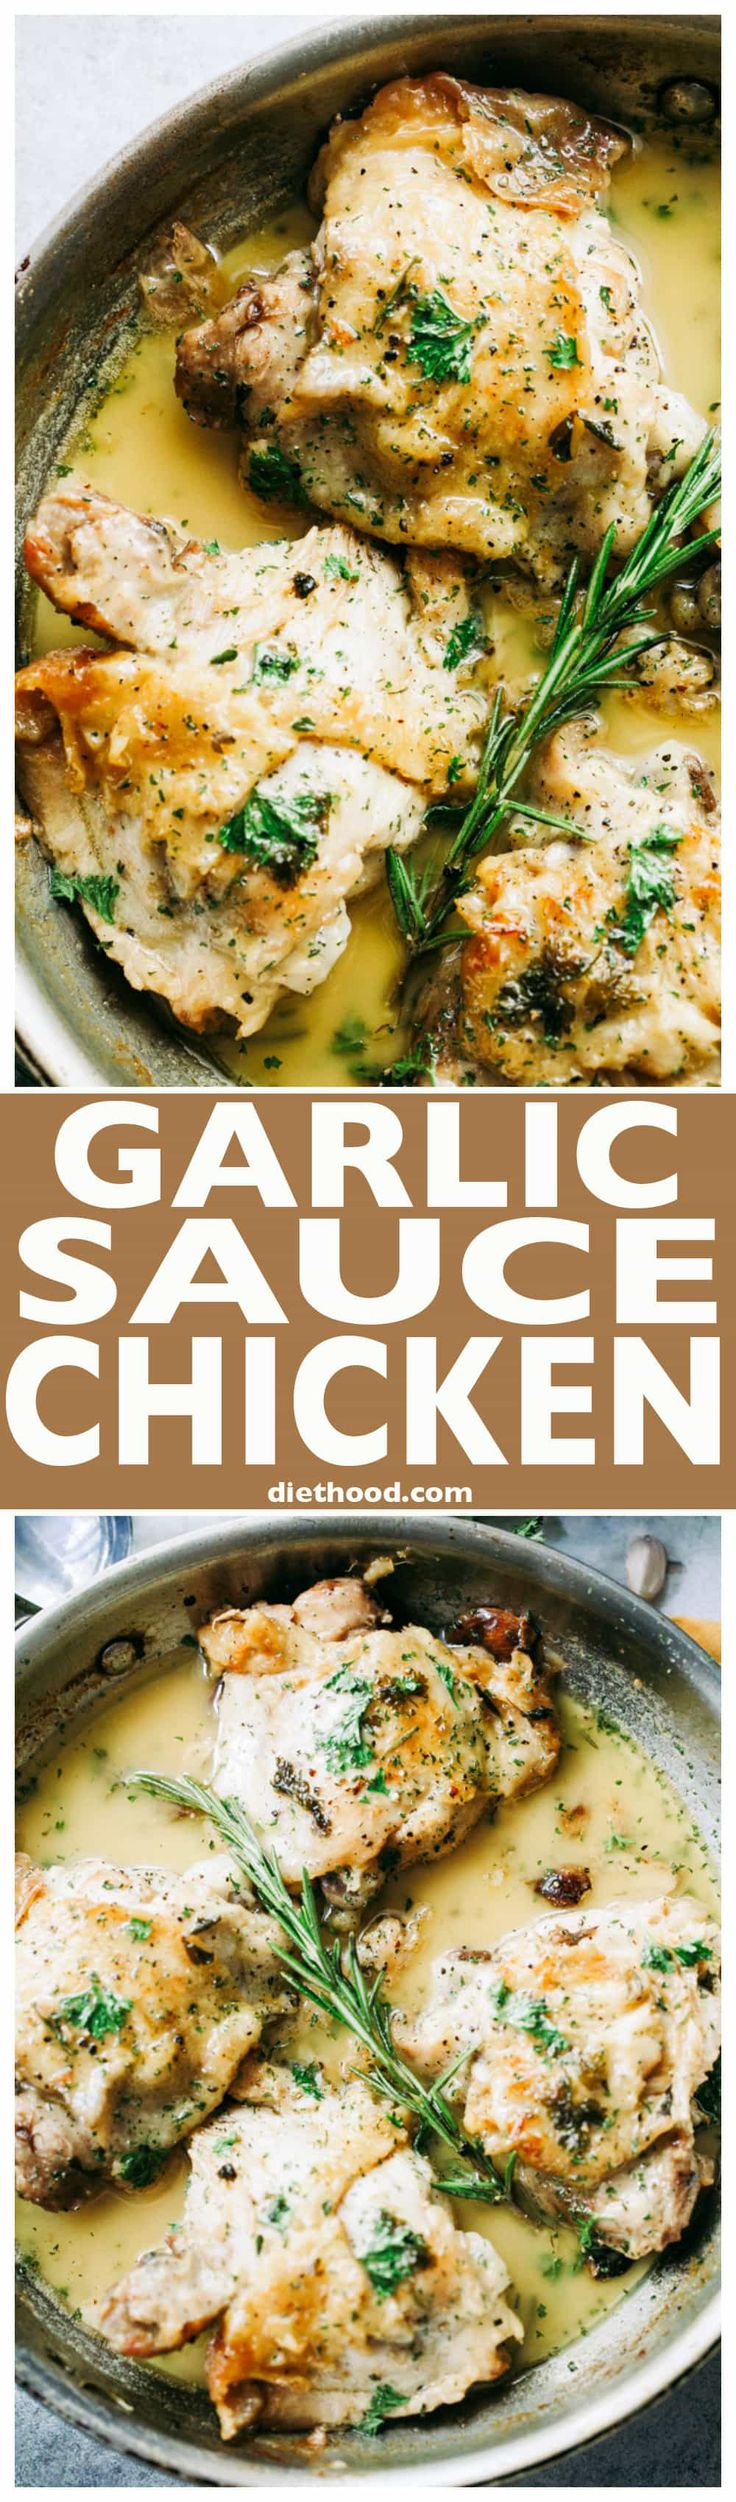 Garlic Sauce Chicken - Pan-seared chicken thighs prepared with an incredible wine and garlic sauce.